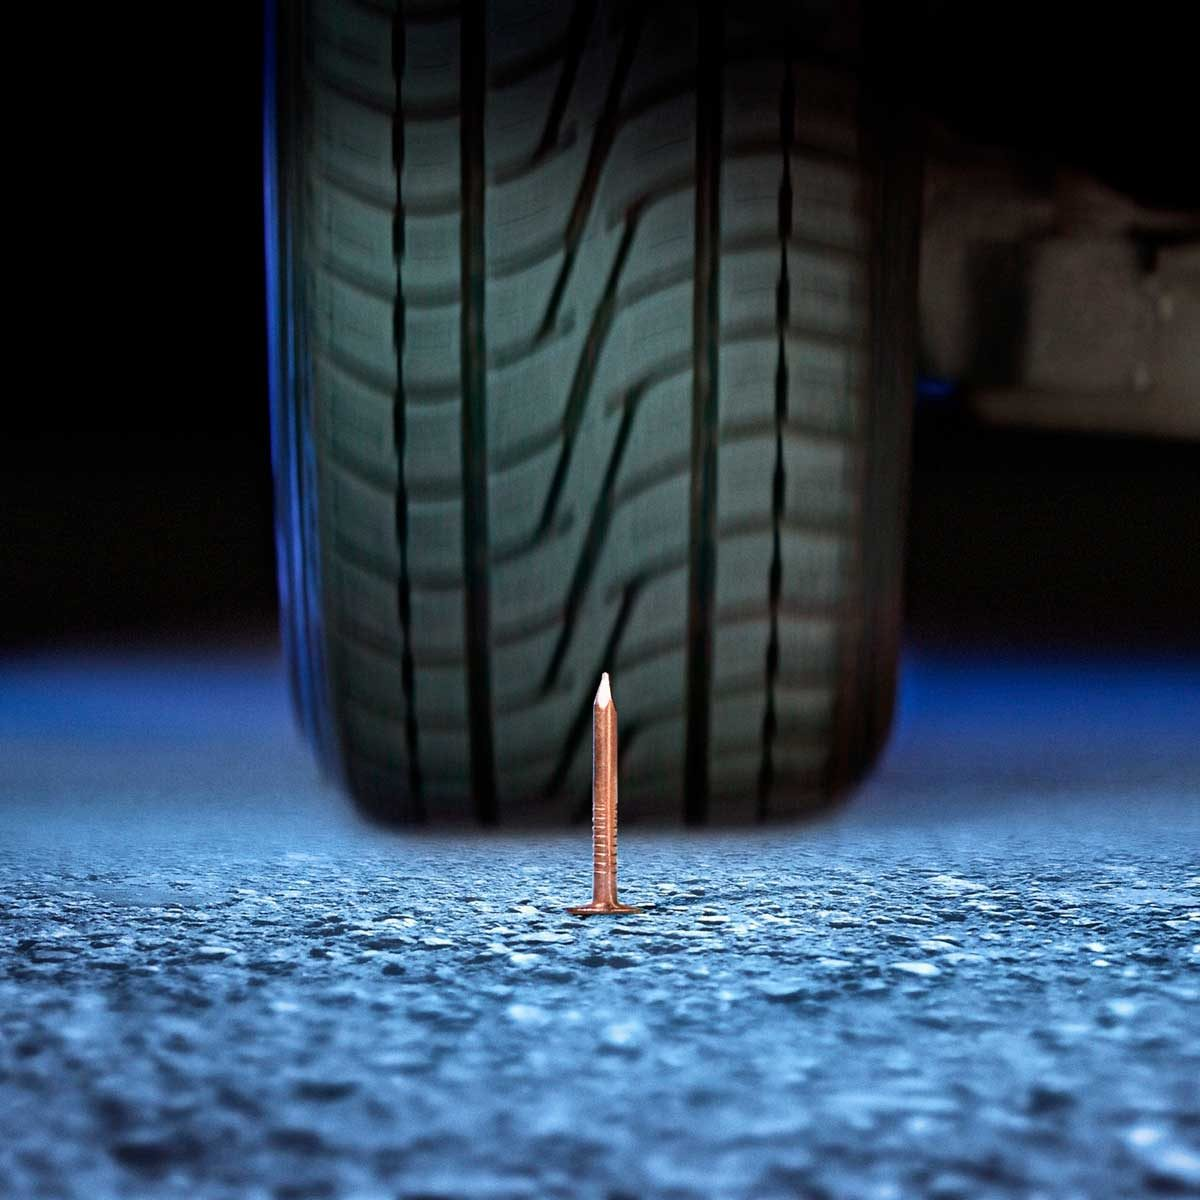 Nail in front of a tire